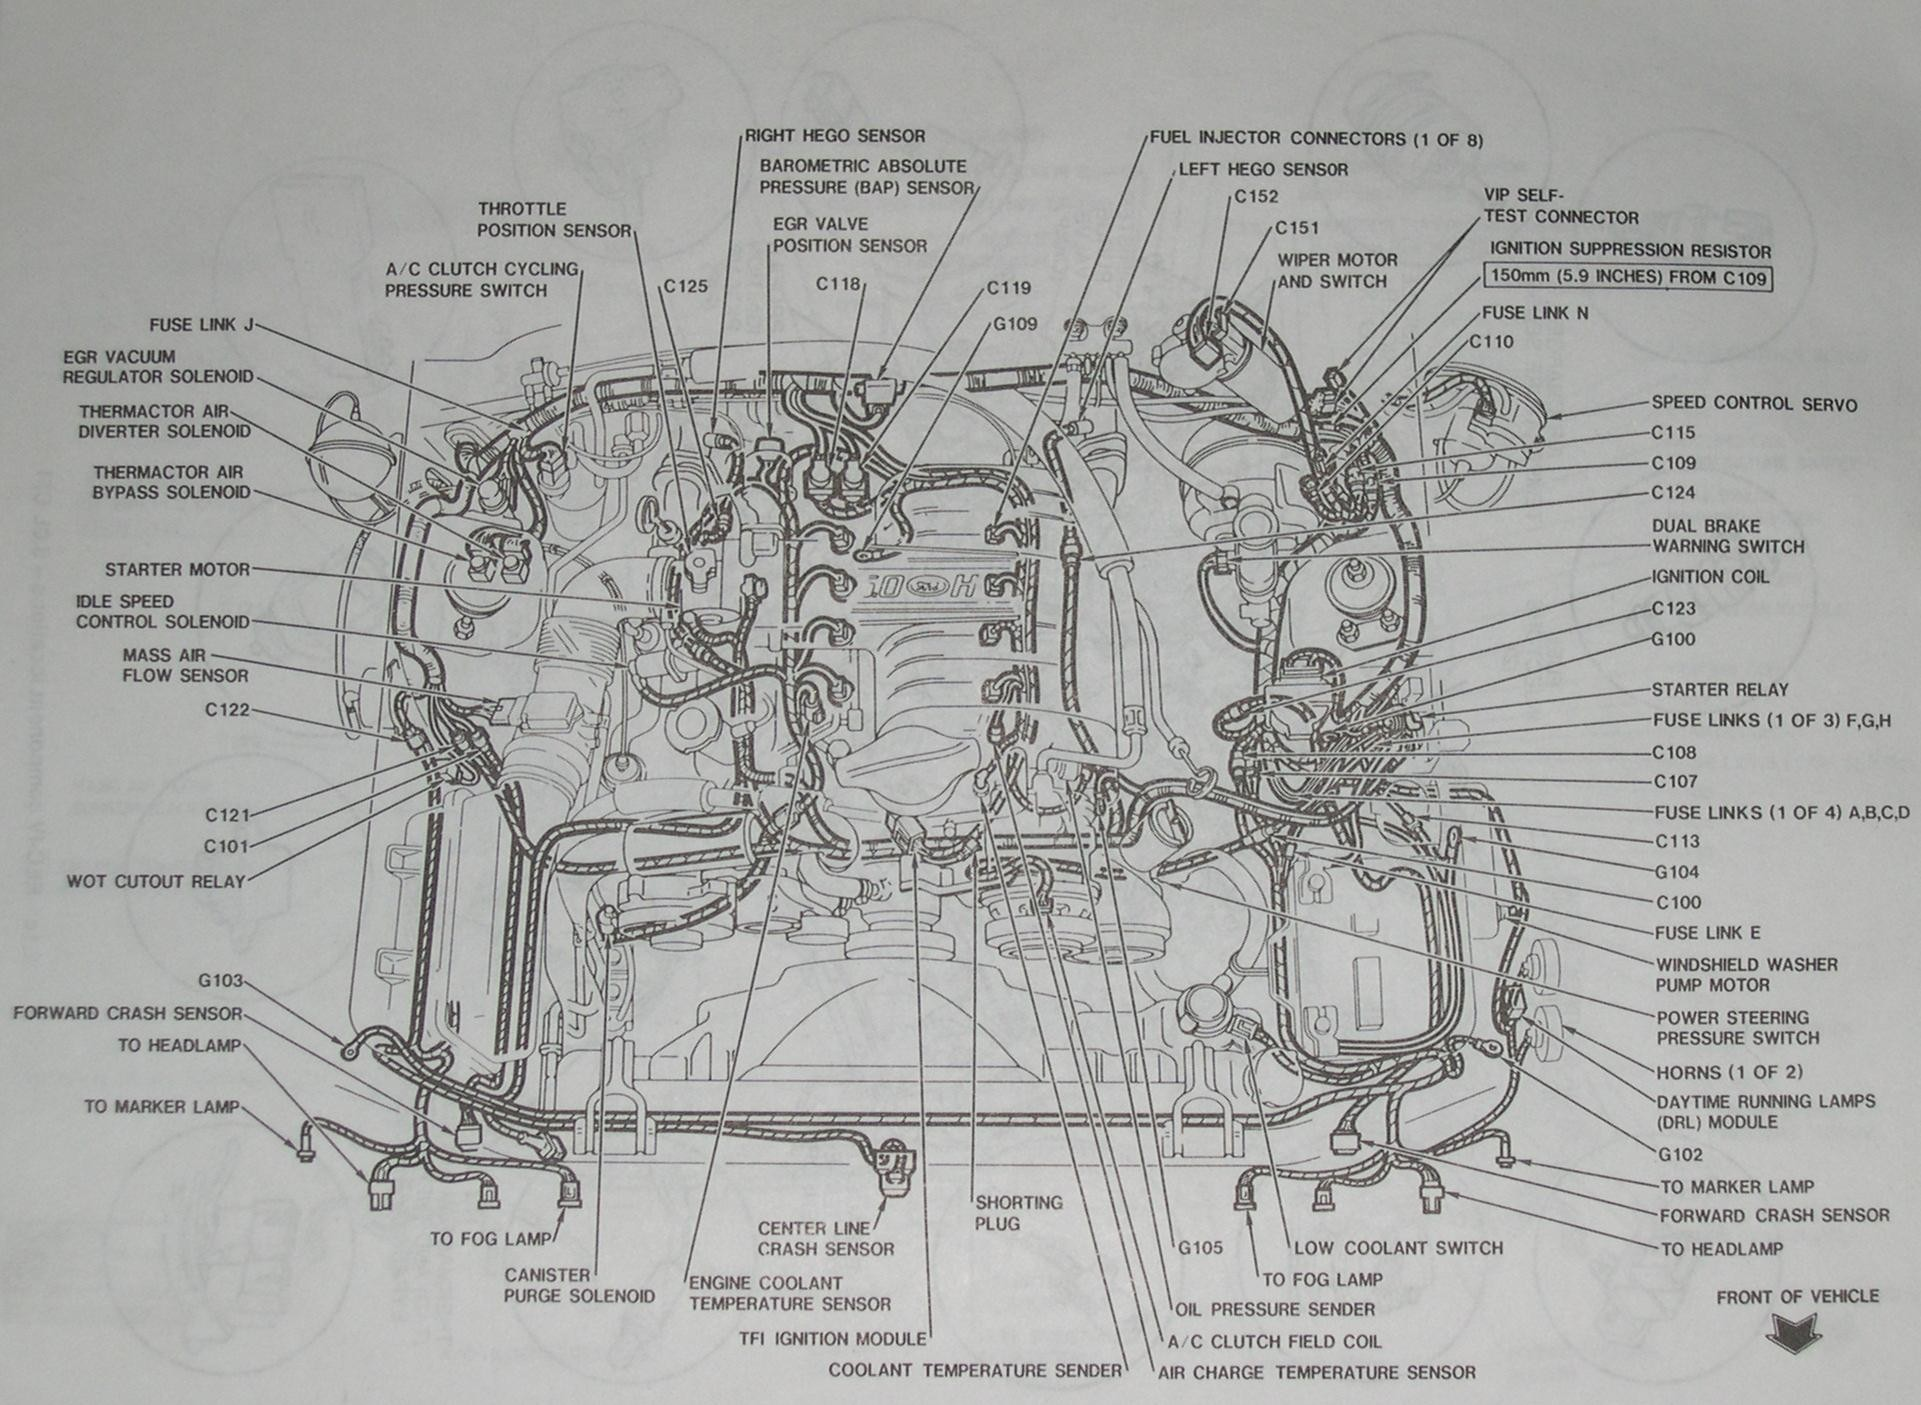 2002 Mustang Gt Engine Diagram to 2007 ford Mustang Wiring Diagram Wiring  Diagram Of 2002 Mustang